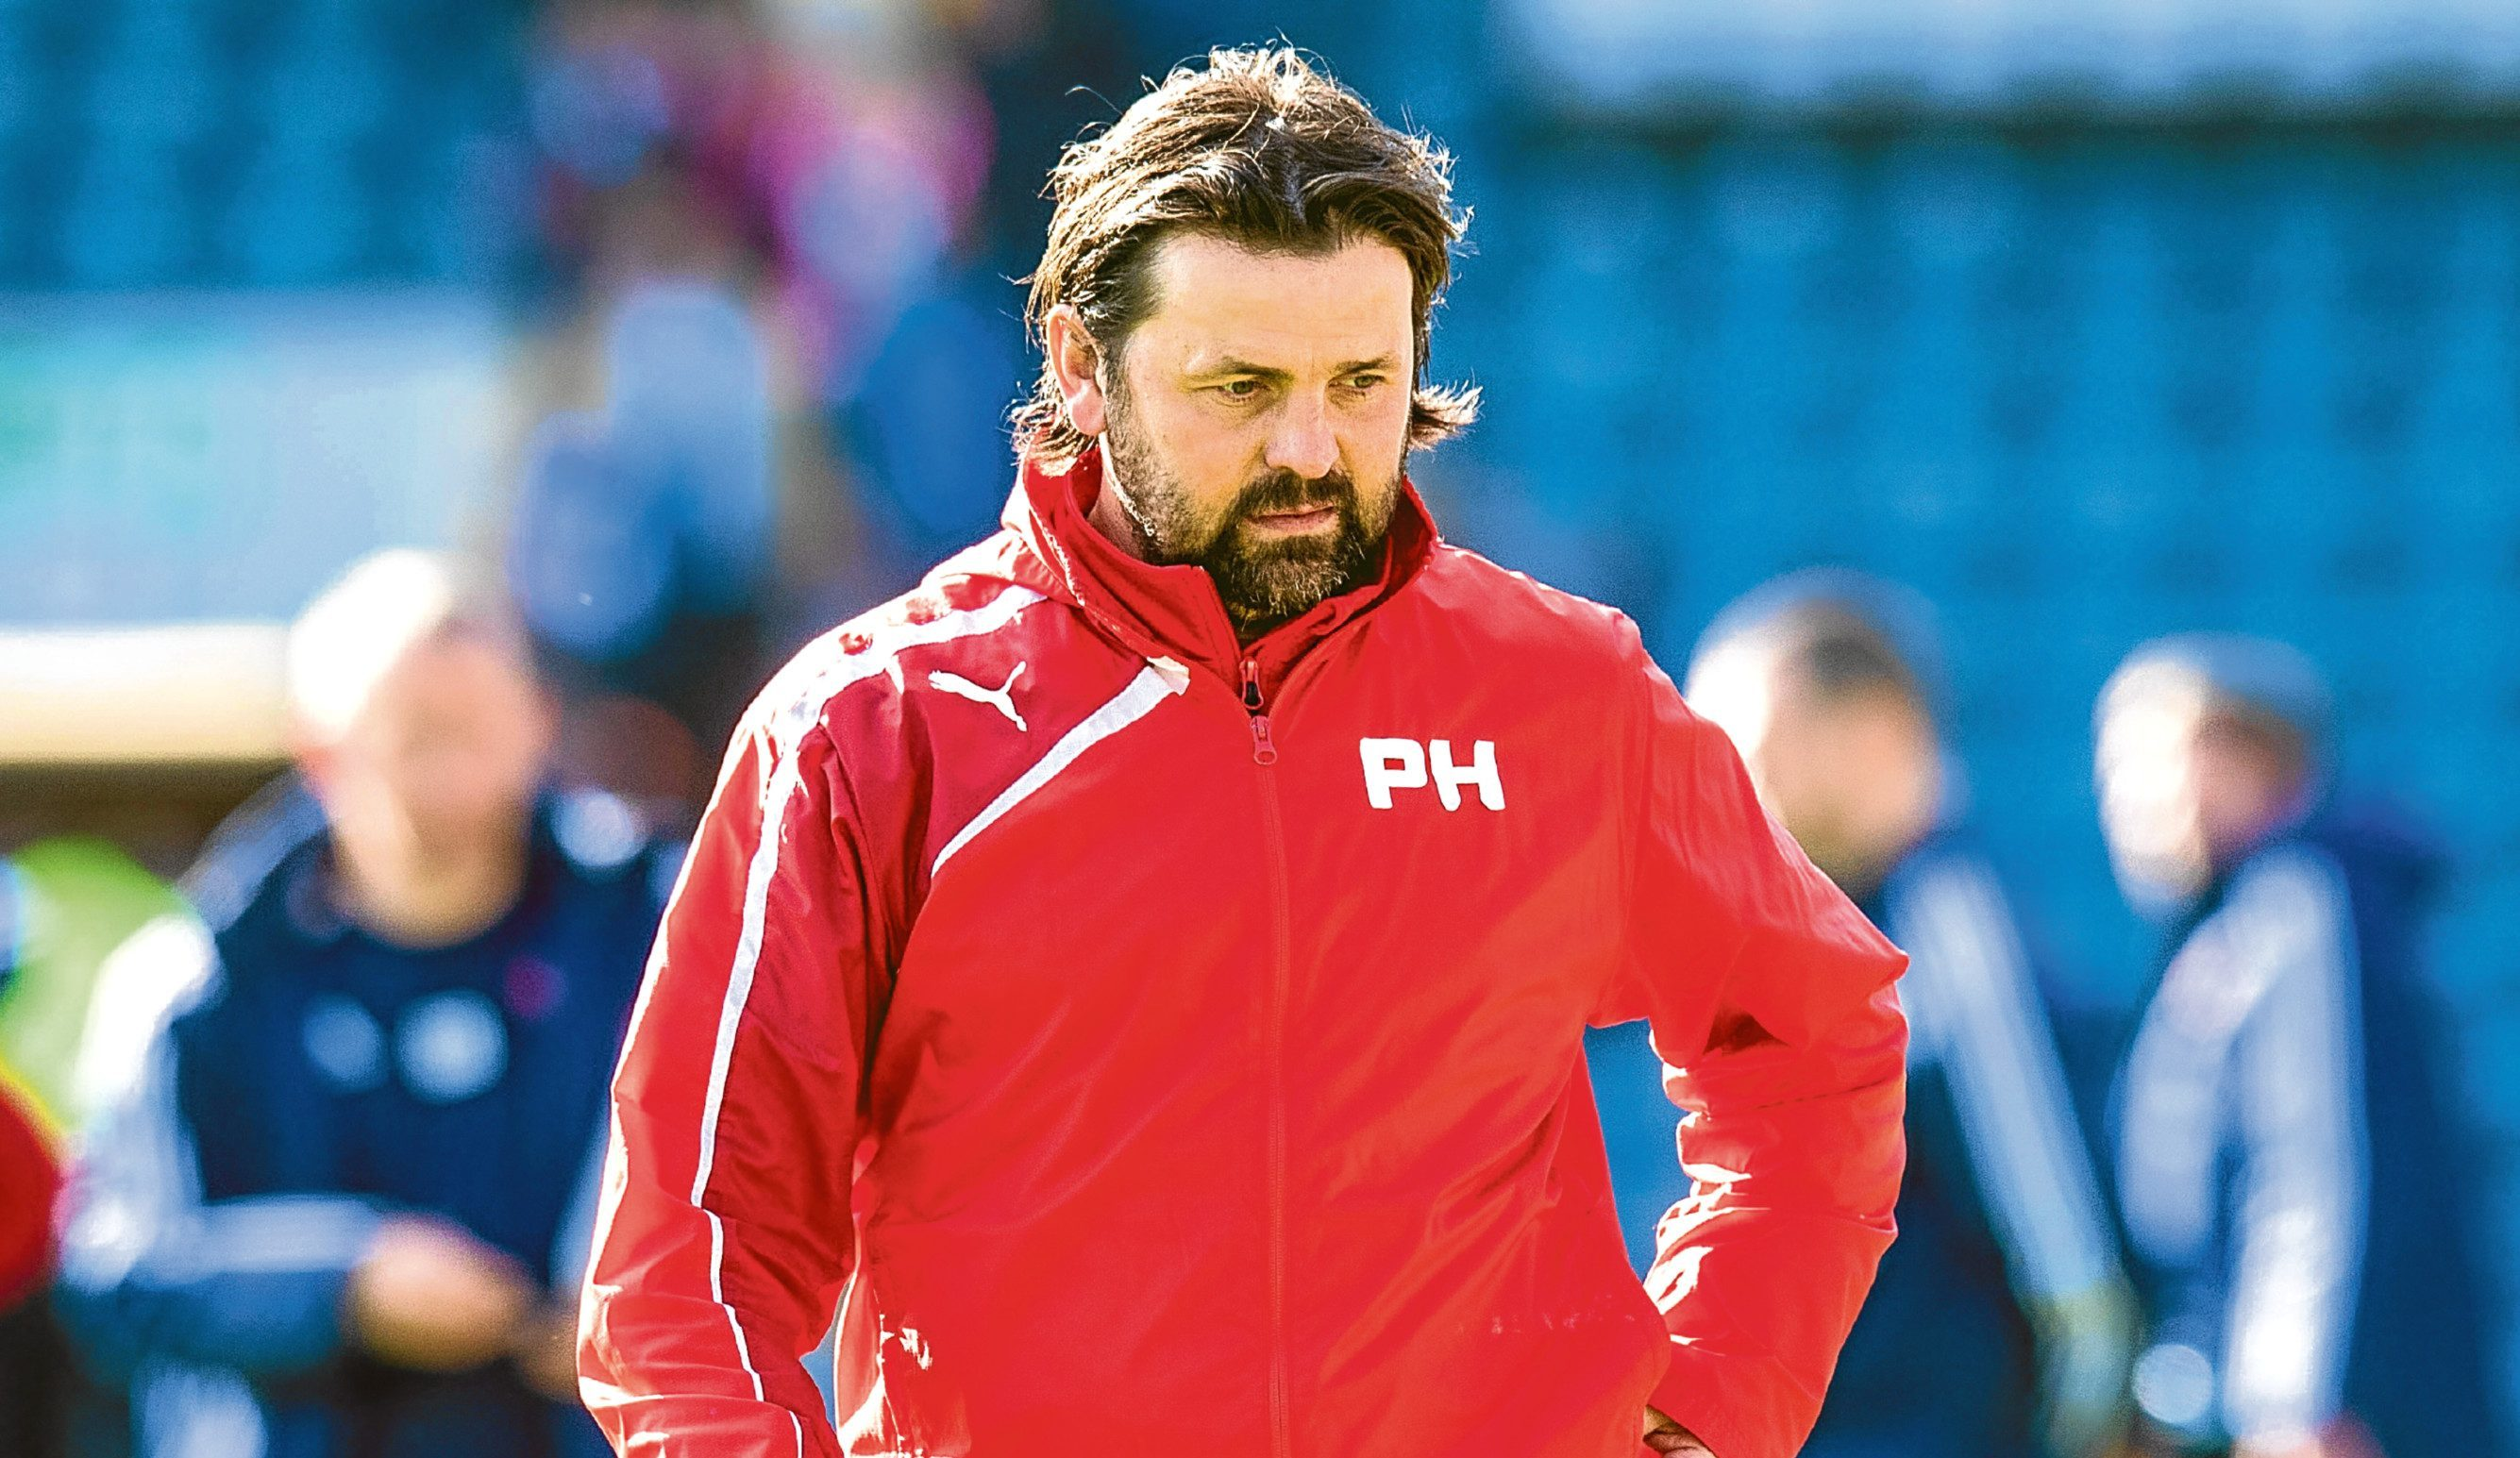 Paul Hartley pictured during his time as manager of Dundee FC.